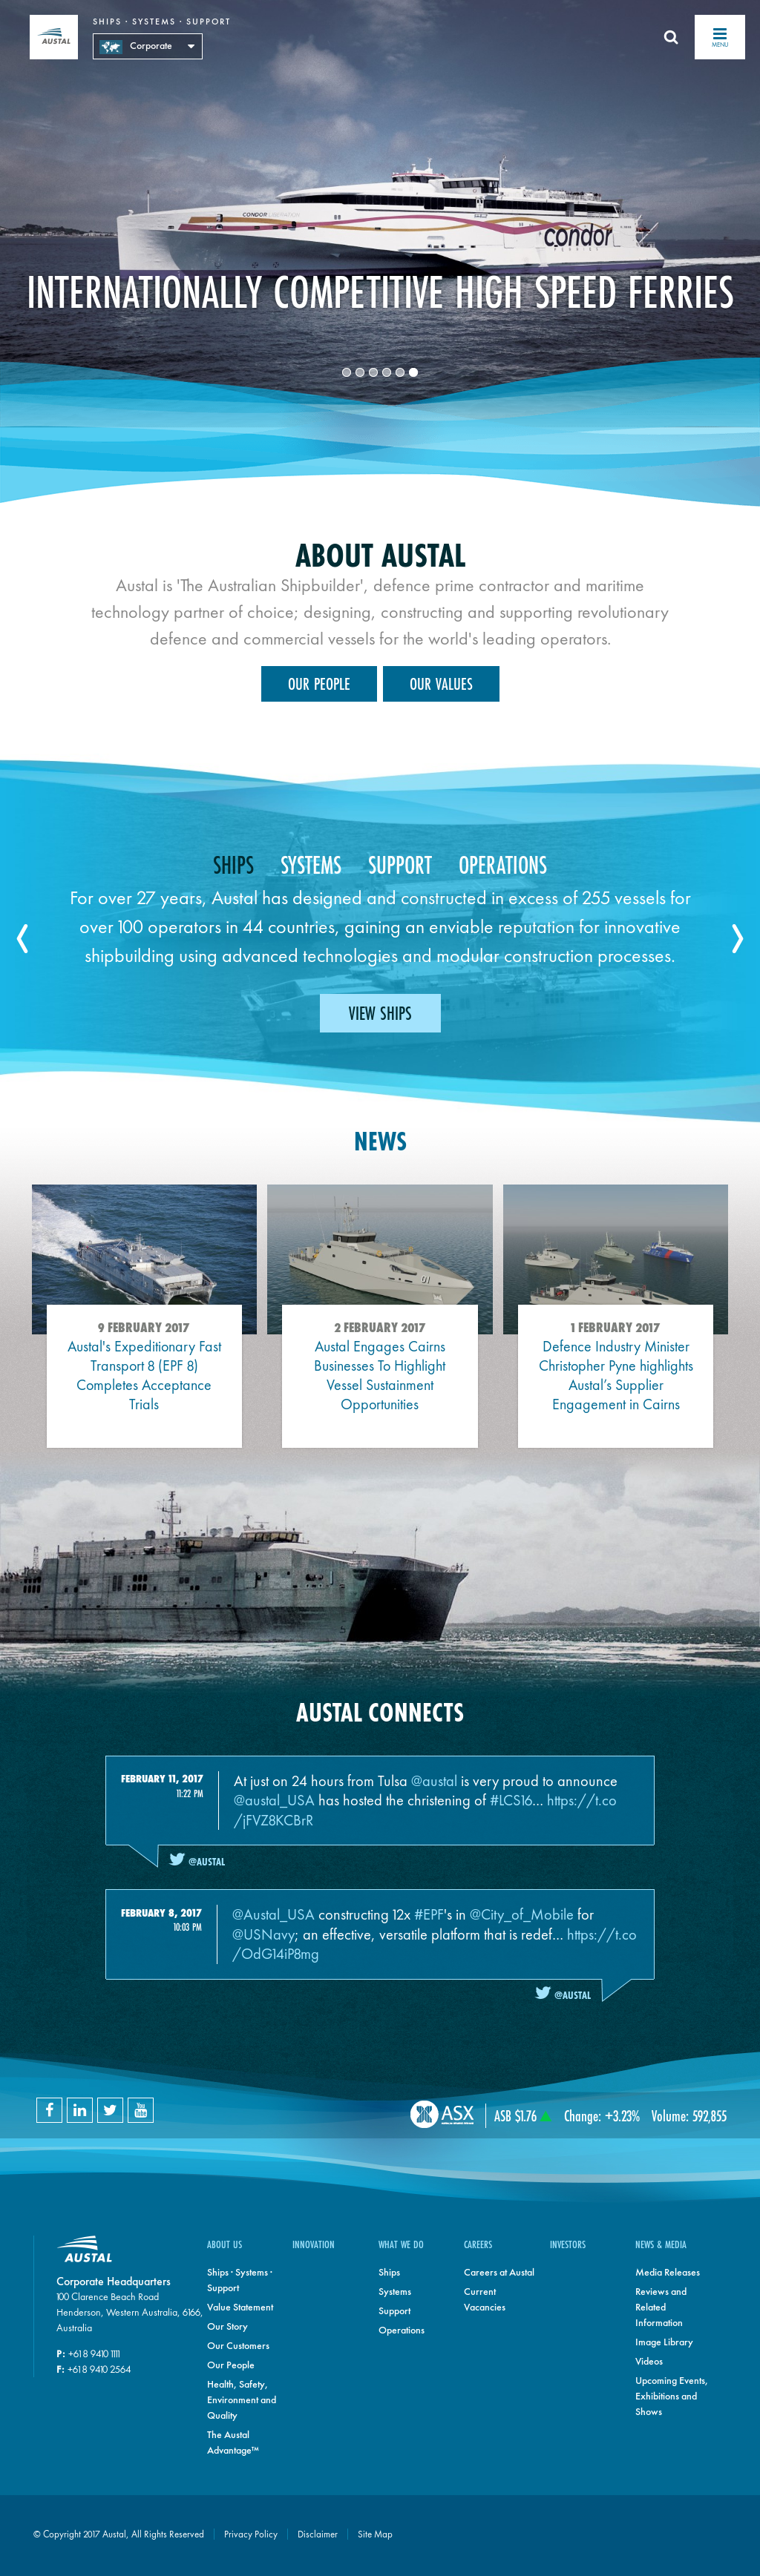 Austal Competitors, Revenue and Employees - Owler Company Profile